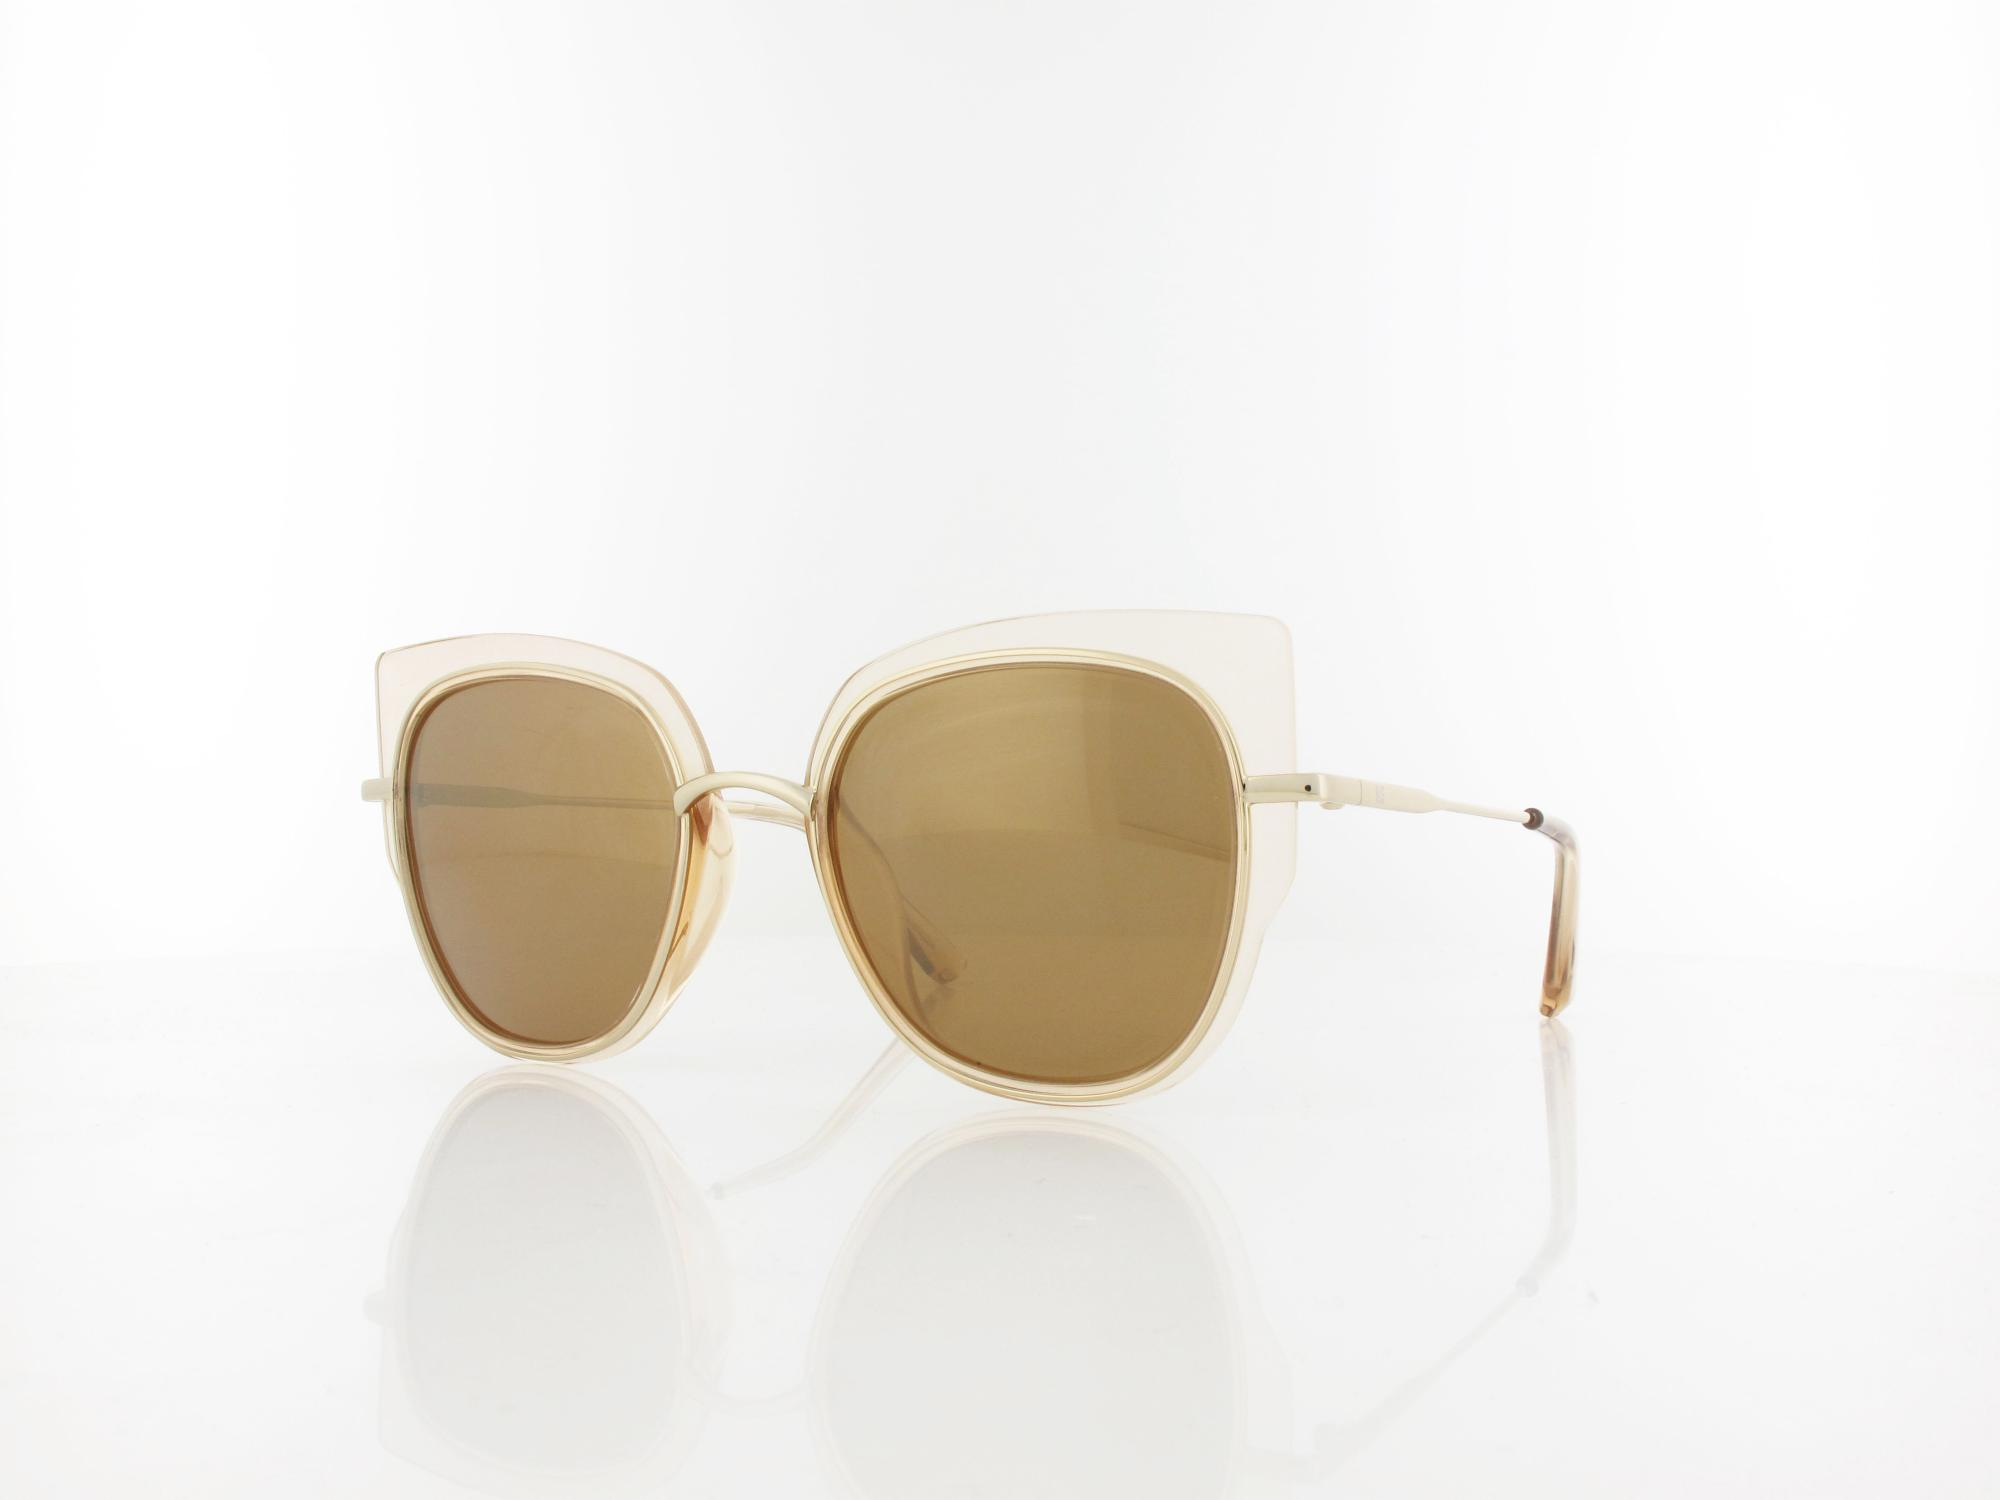 HIS polarized | HPS94121-3 52 | brown / brown with gold flash polarized